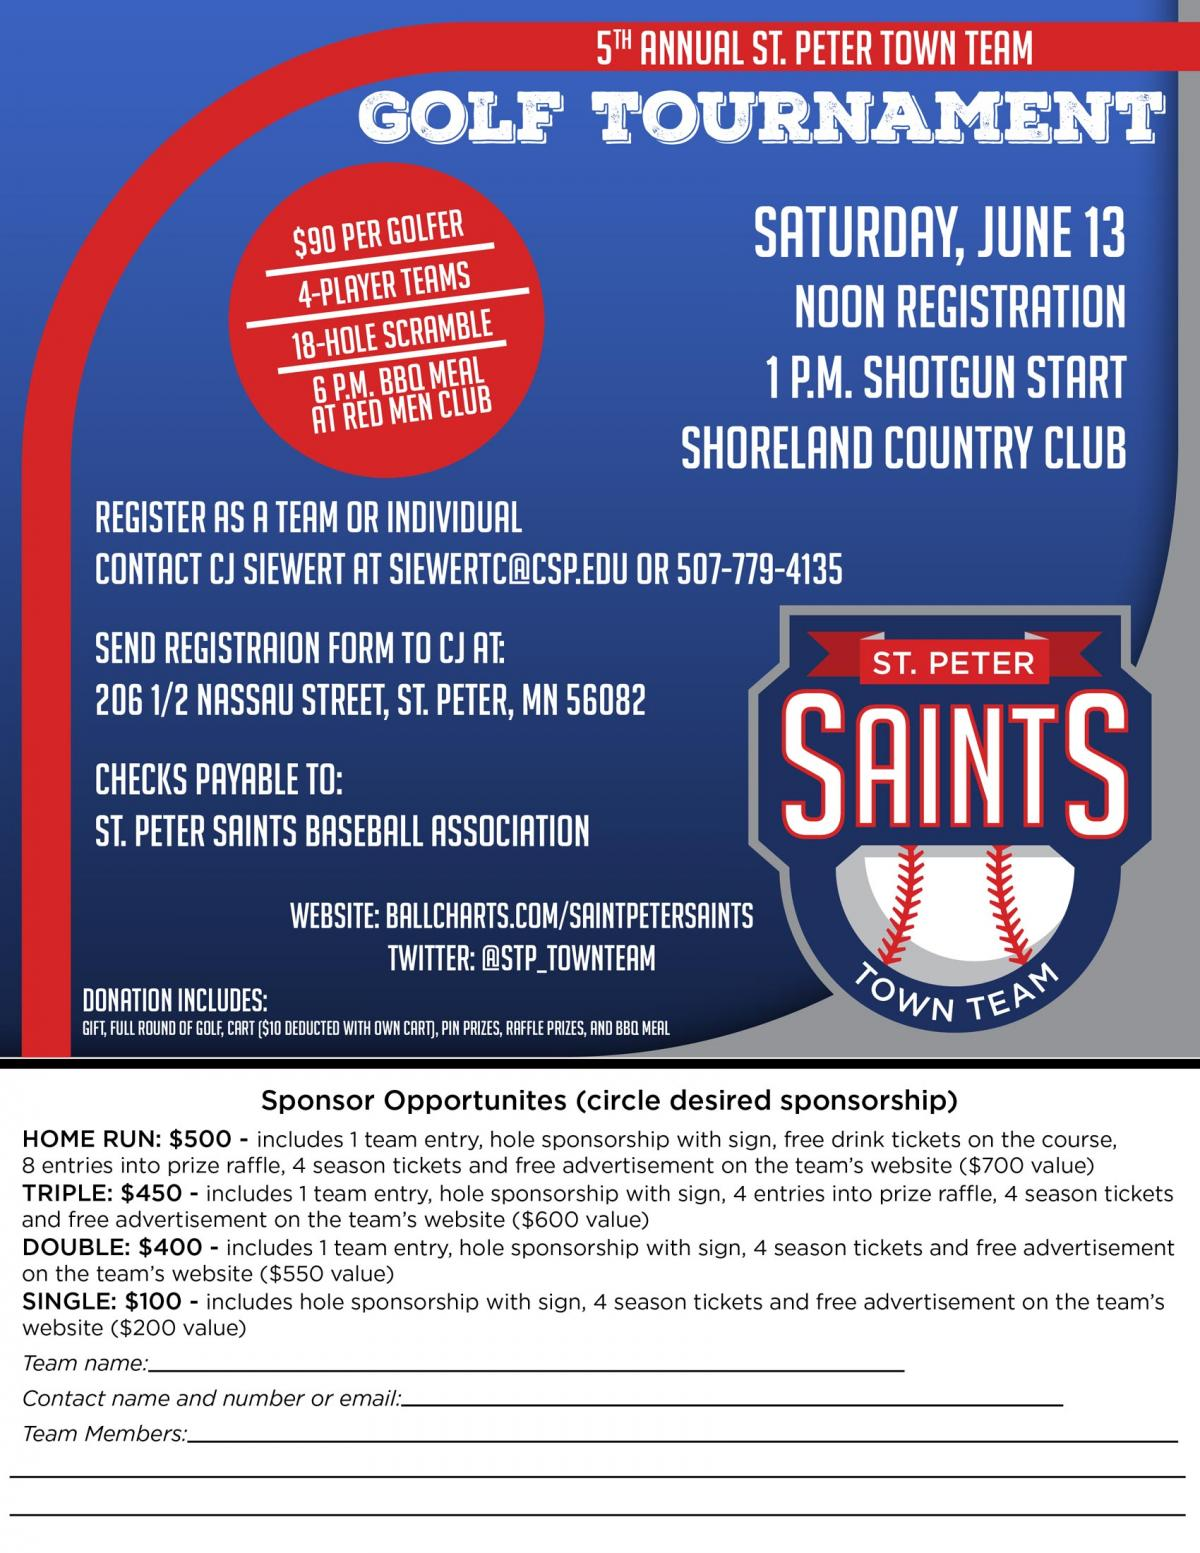 5th annual golf tourney set for June 13